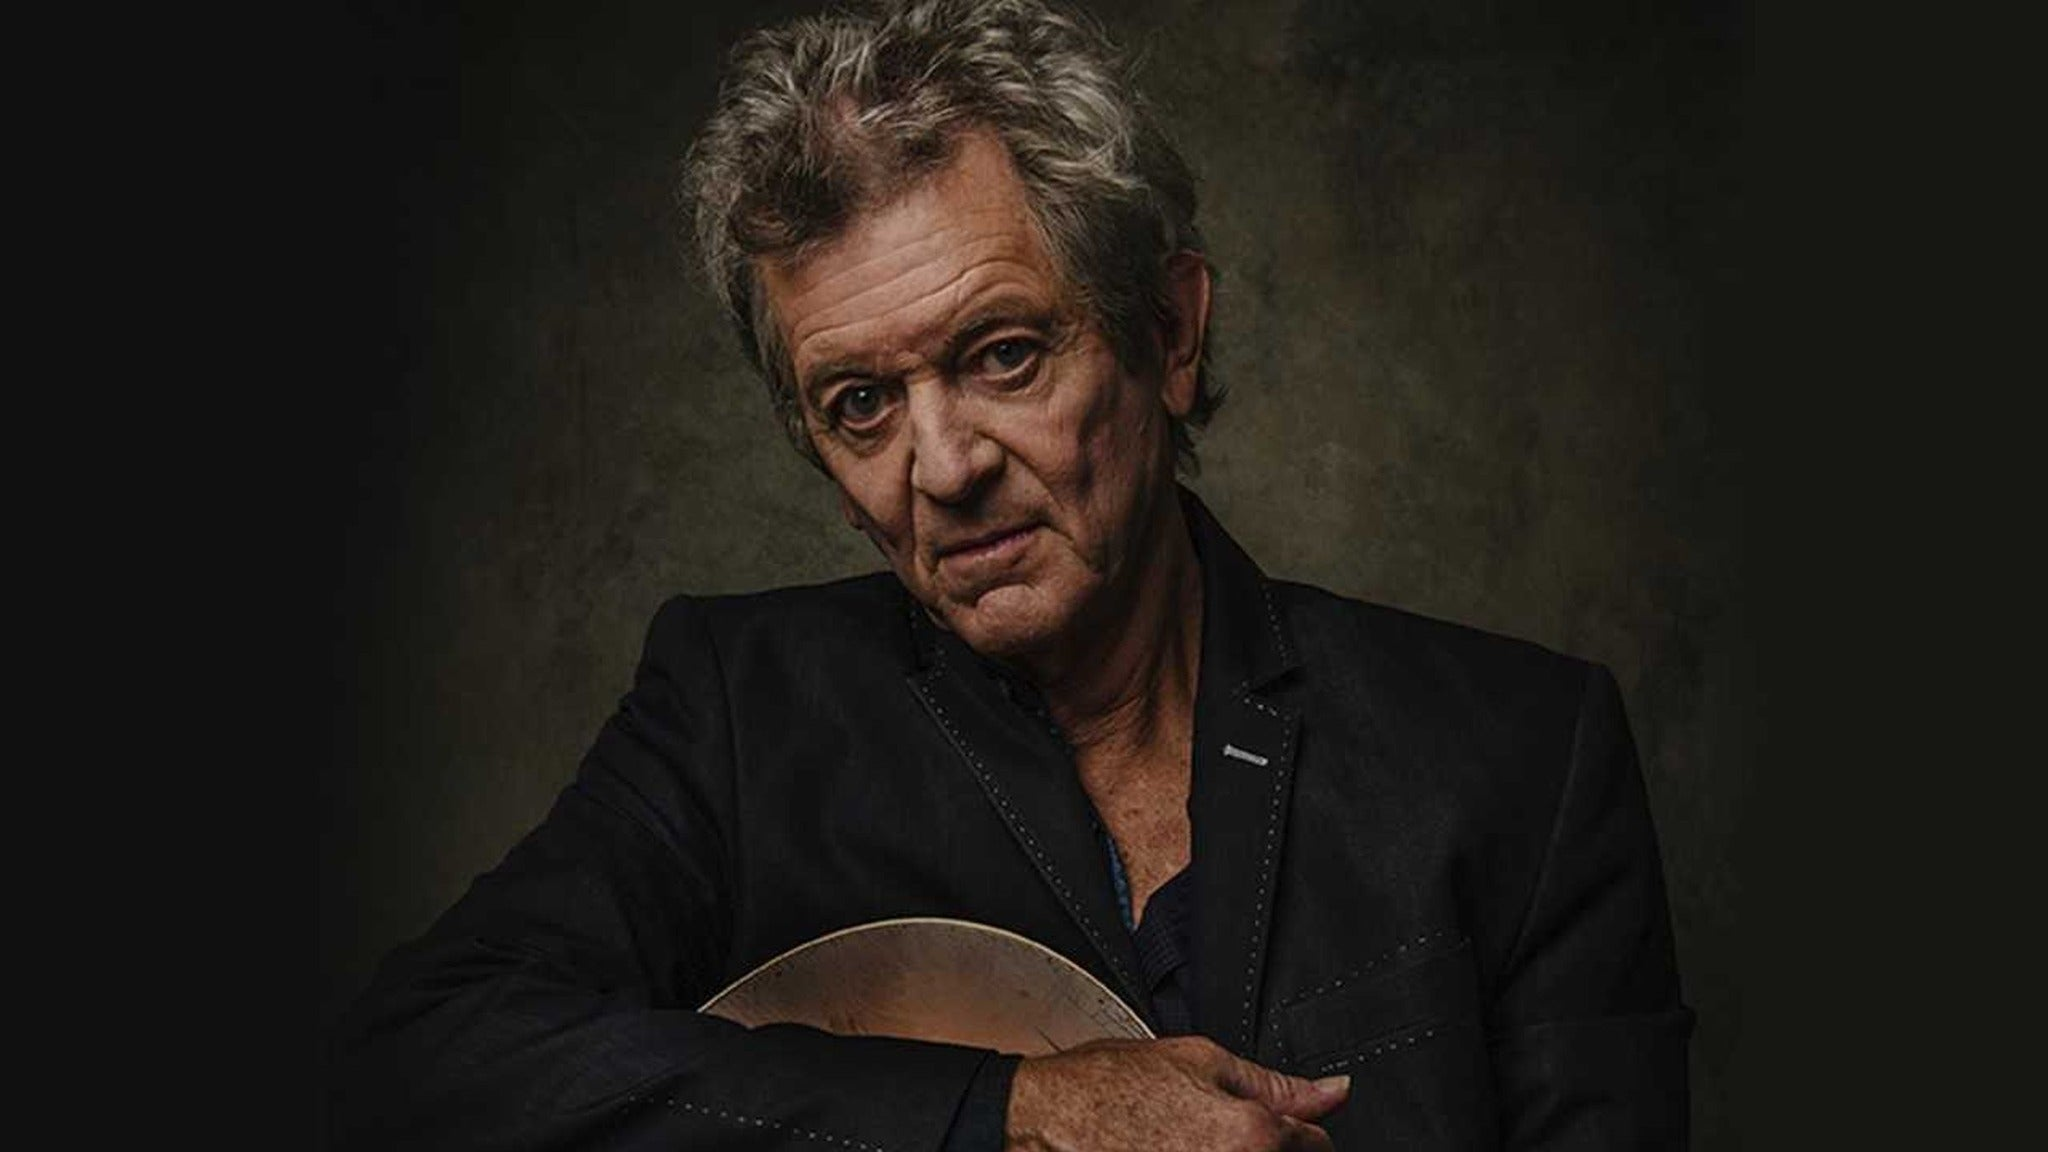 Rodney Crowell at McCallum Theatre - Palm Desert, CA 92260